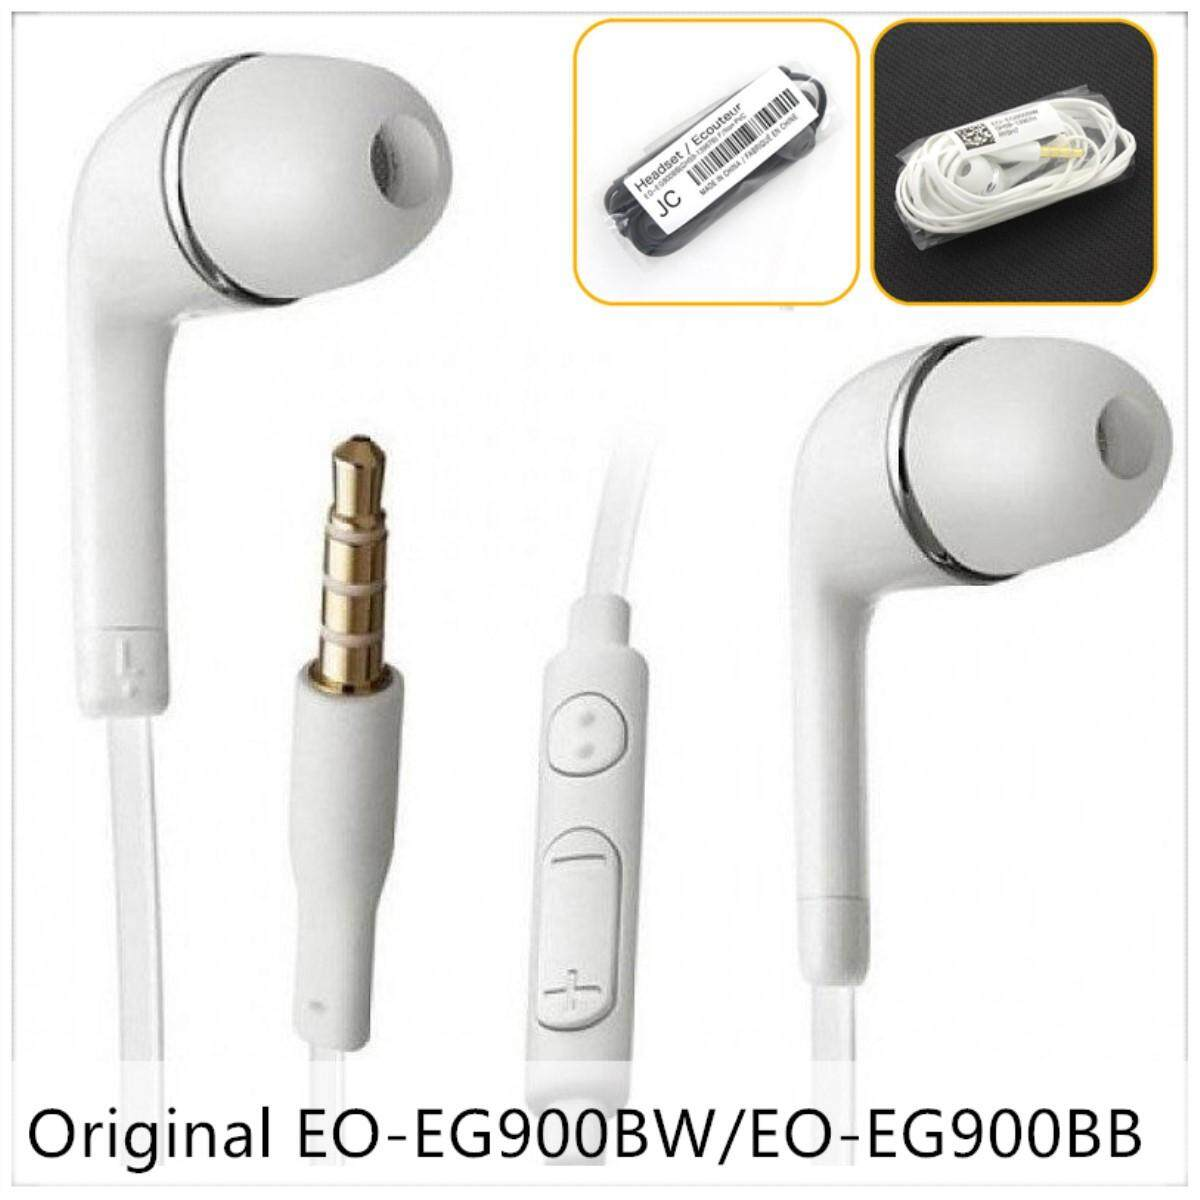 Samsung EO-EG900BW stereo in ear earphones for Galaxy Note and S3 S4 S5 S6